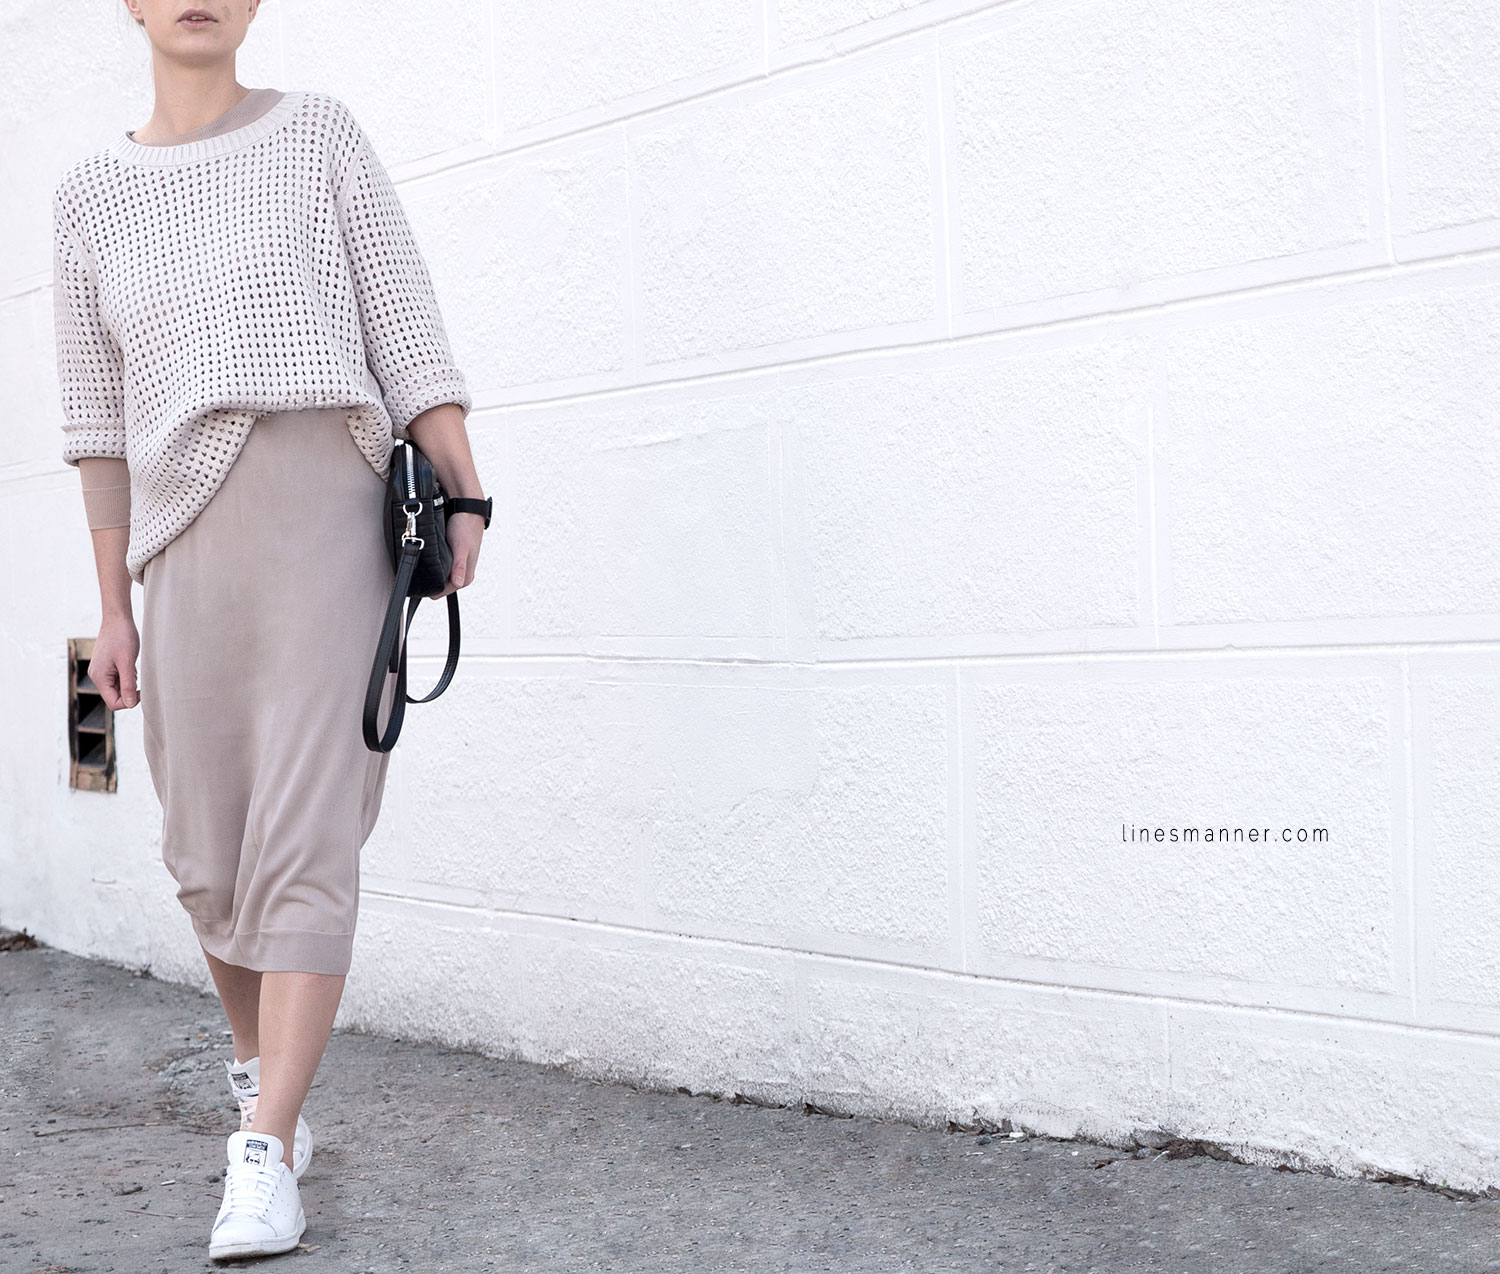 Lines-Manner-Tonal-Shades-Neutrals-Undertones-Essentials-Details-Elegant-Casual-Knit-Maxi_dress-Beige-Cream-Nude-Dimension-Skin-COS-Light-4